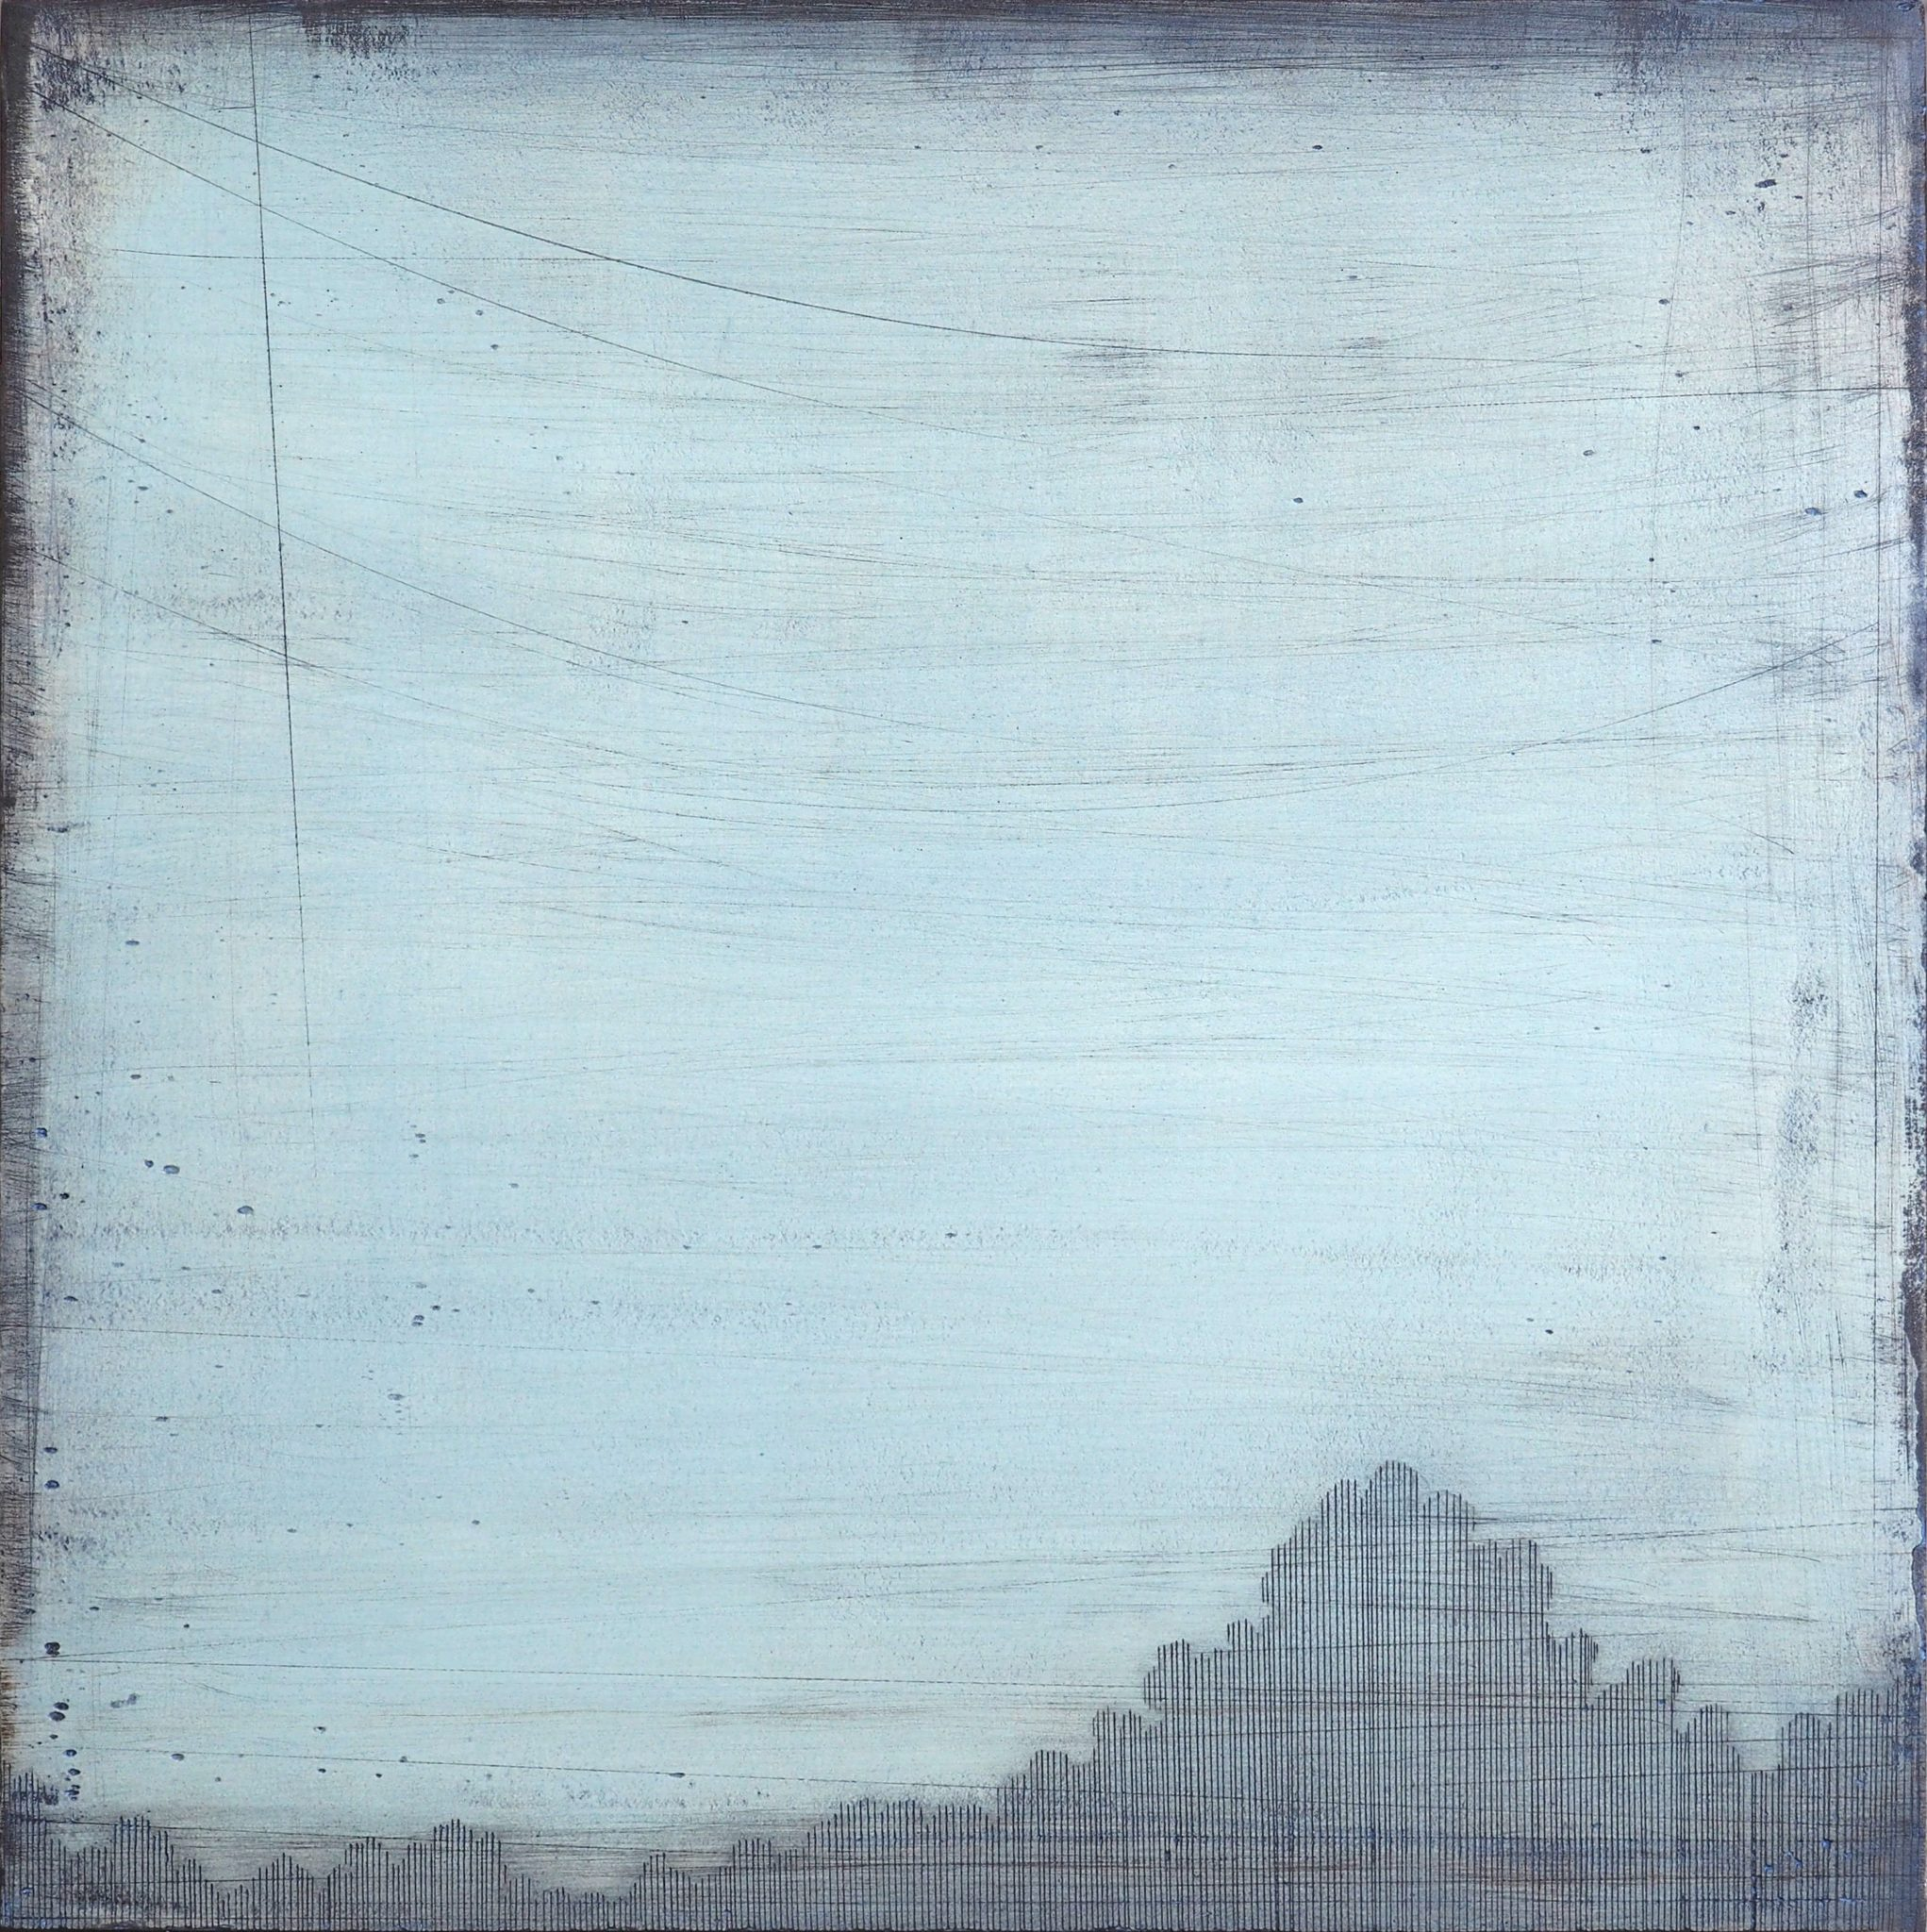 Celadon Sky II 30x30cm acrylic and plaster on board